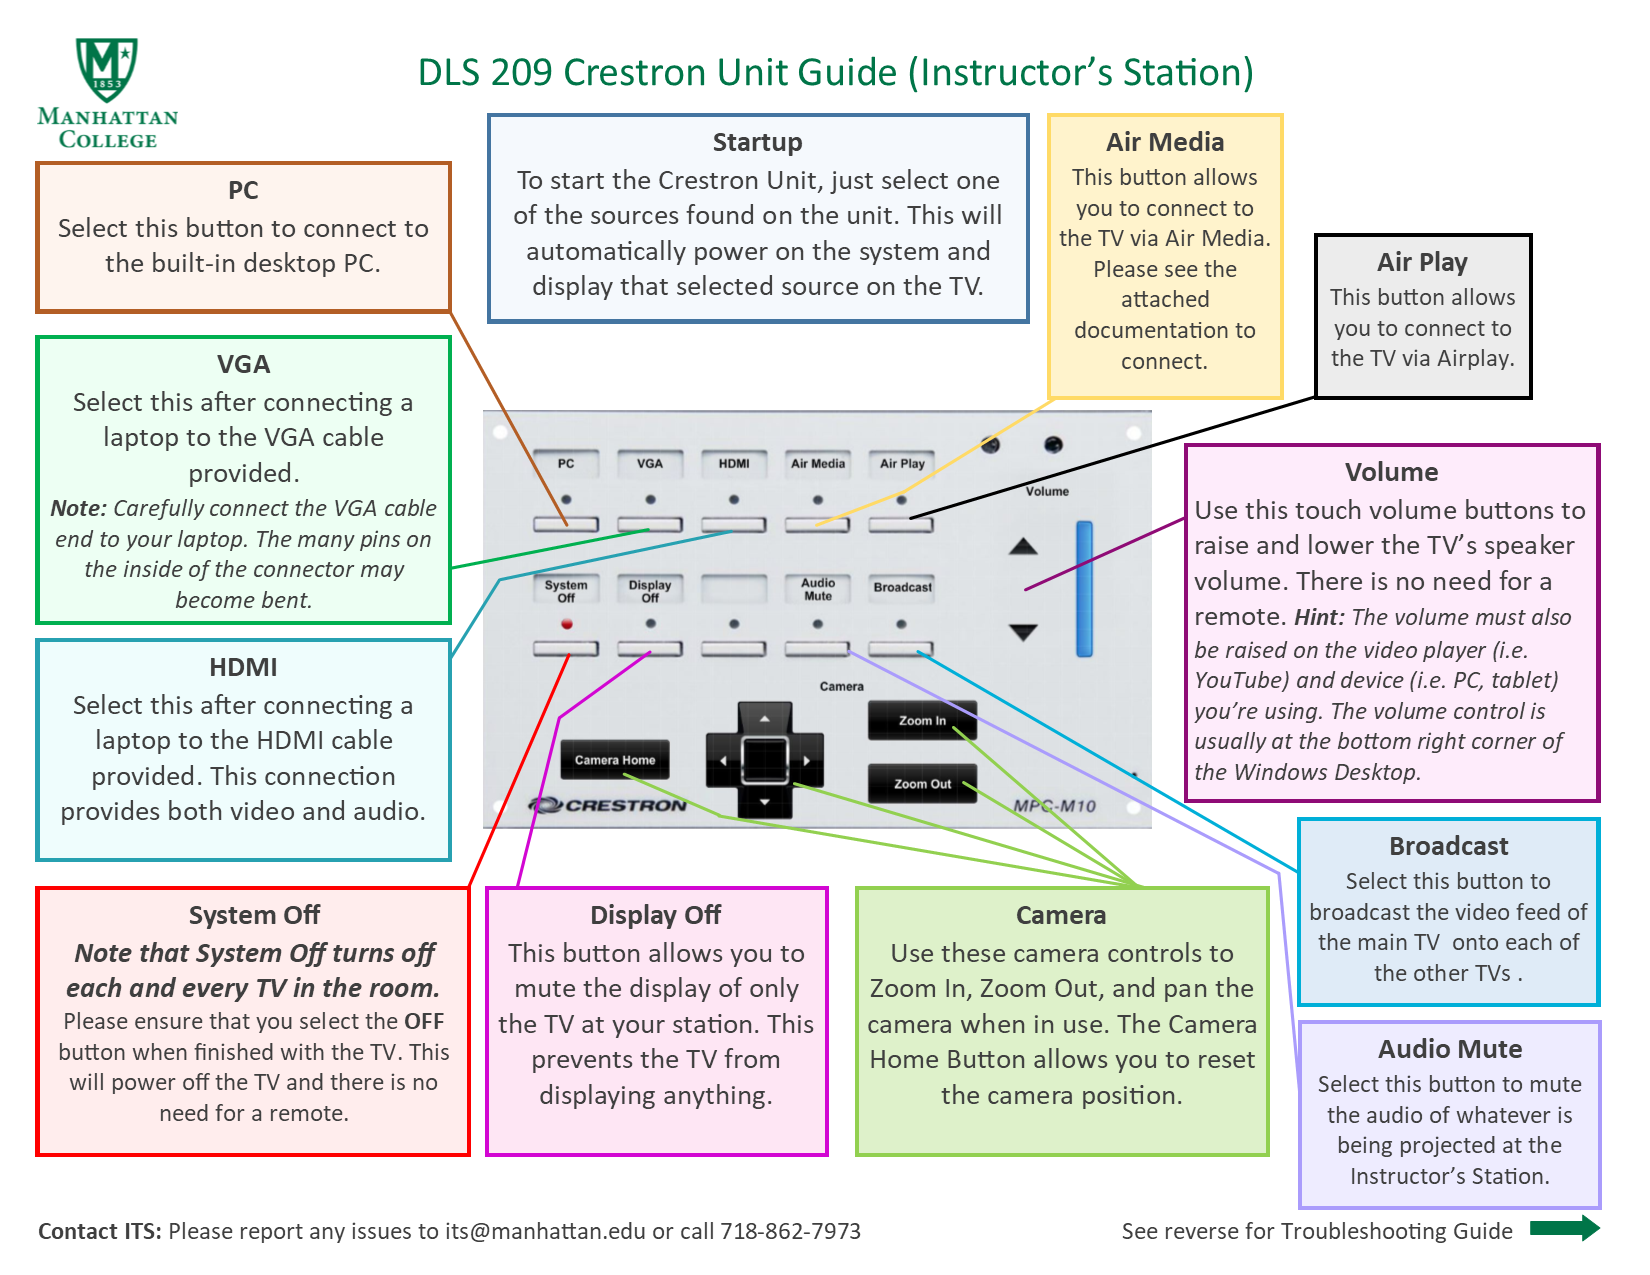 image depicting dls 209 crestron unit instructor's station